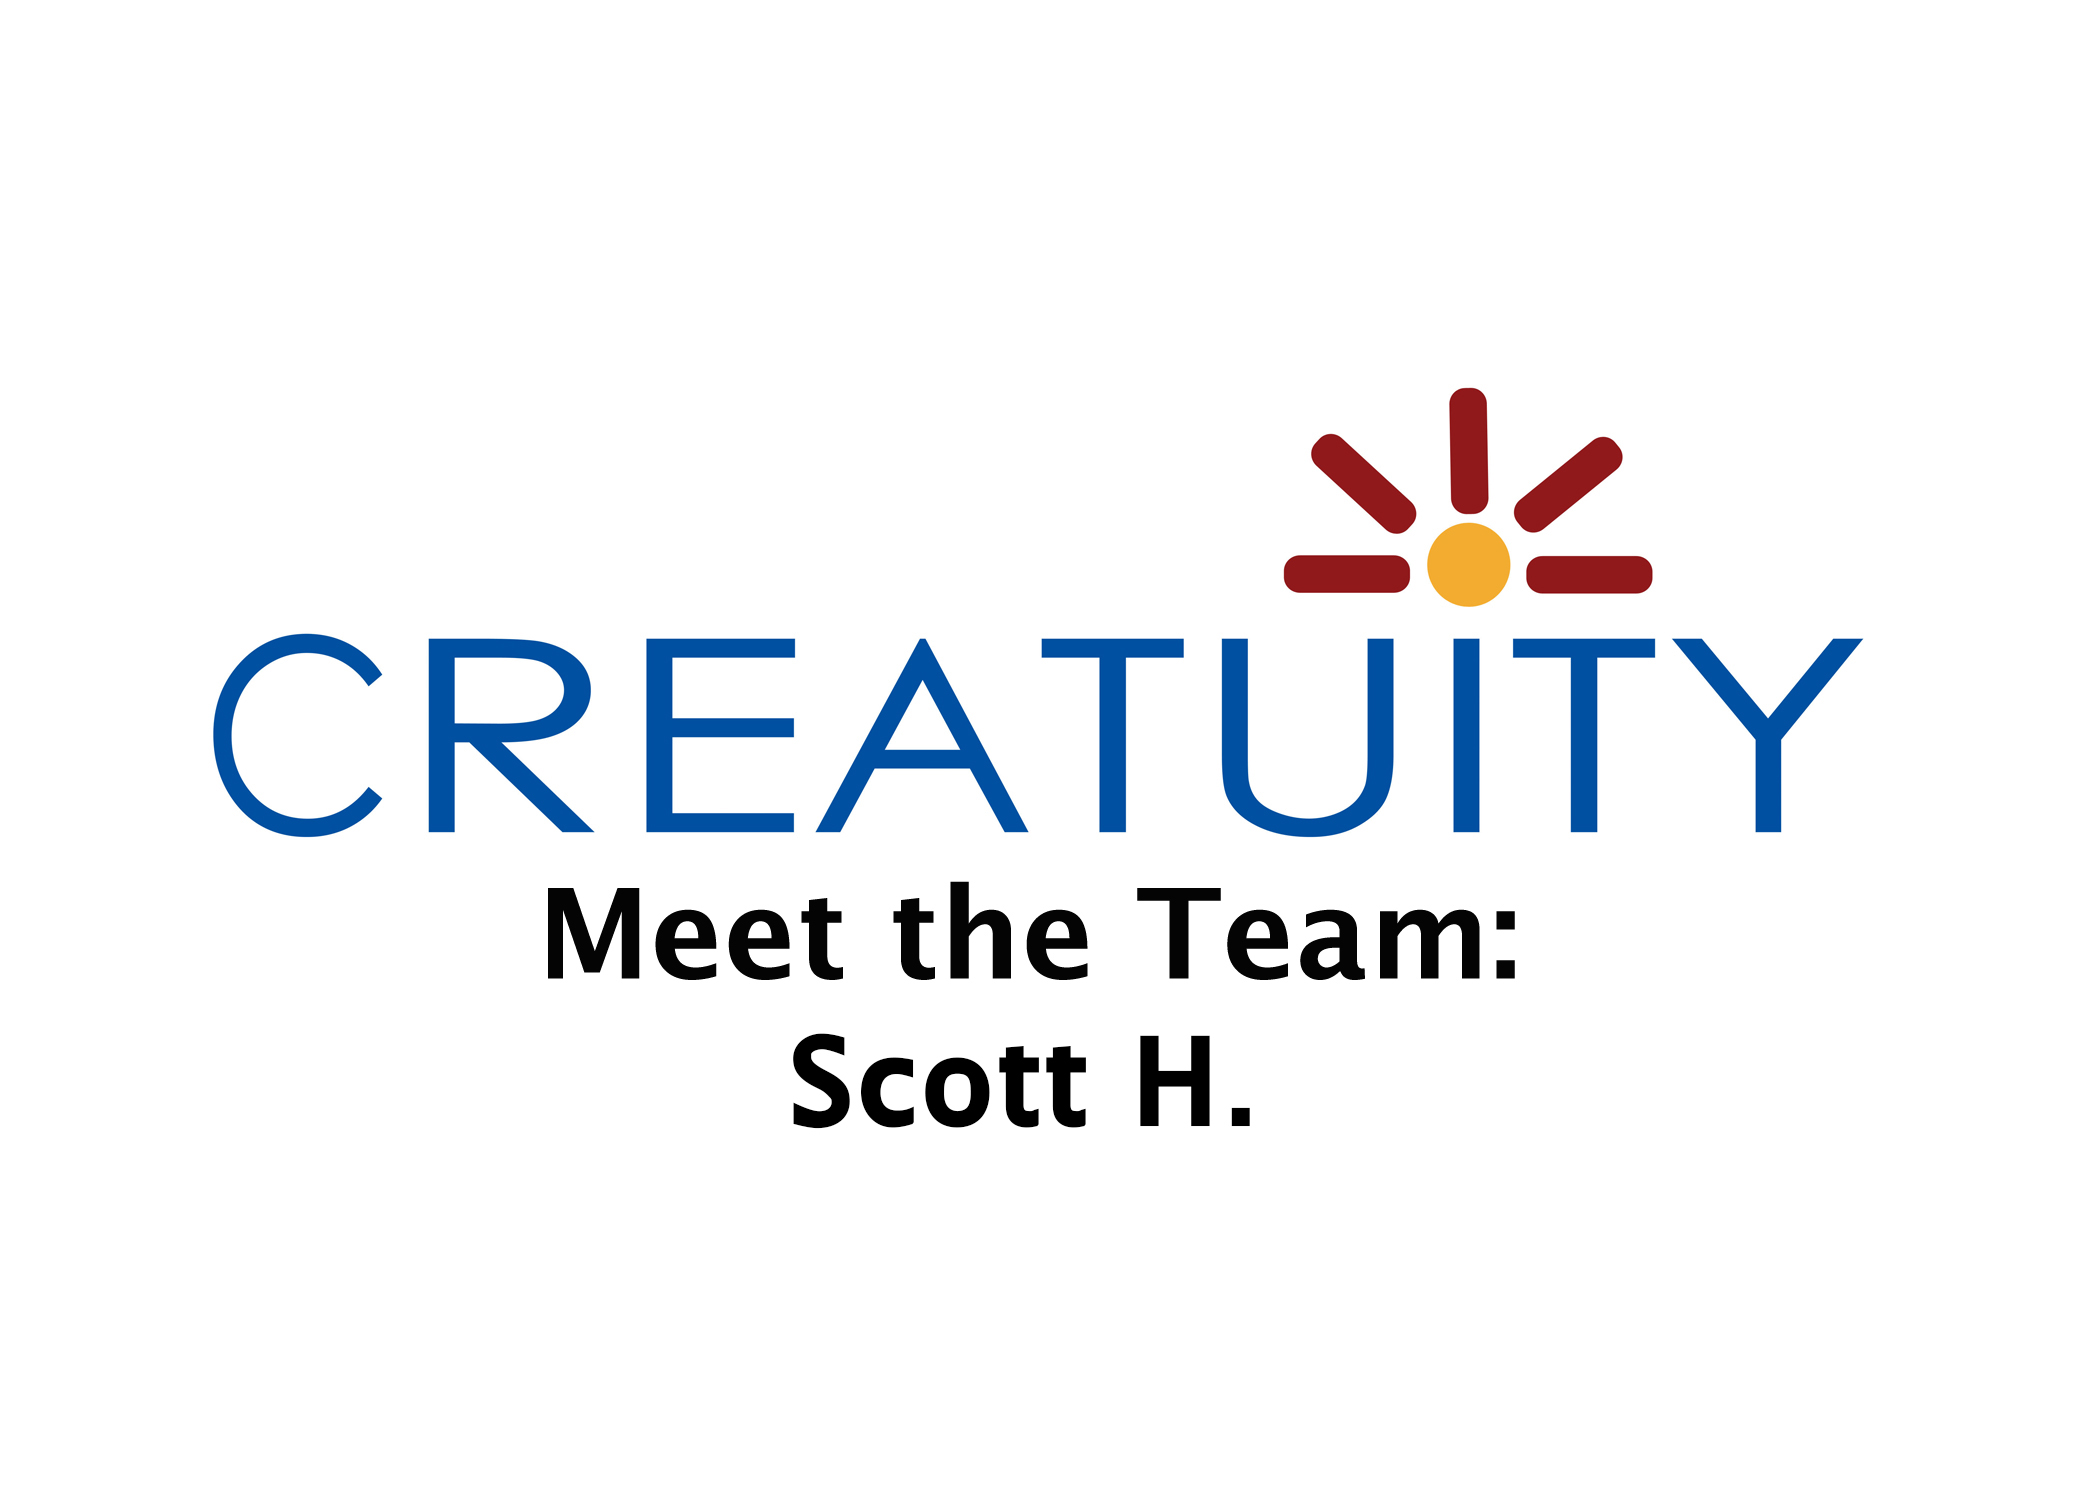 Meet the Team: Scott H. 12